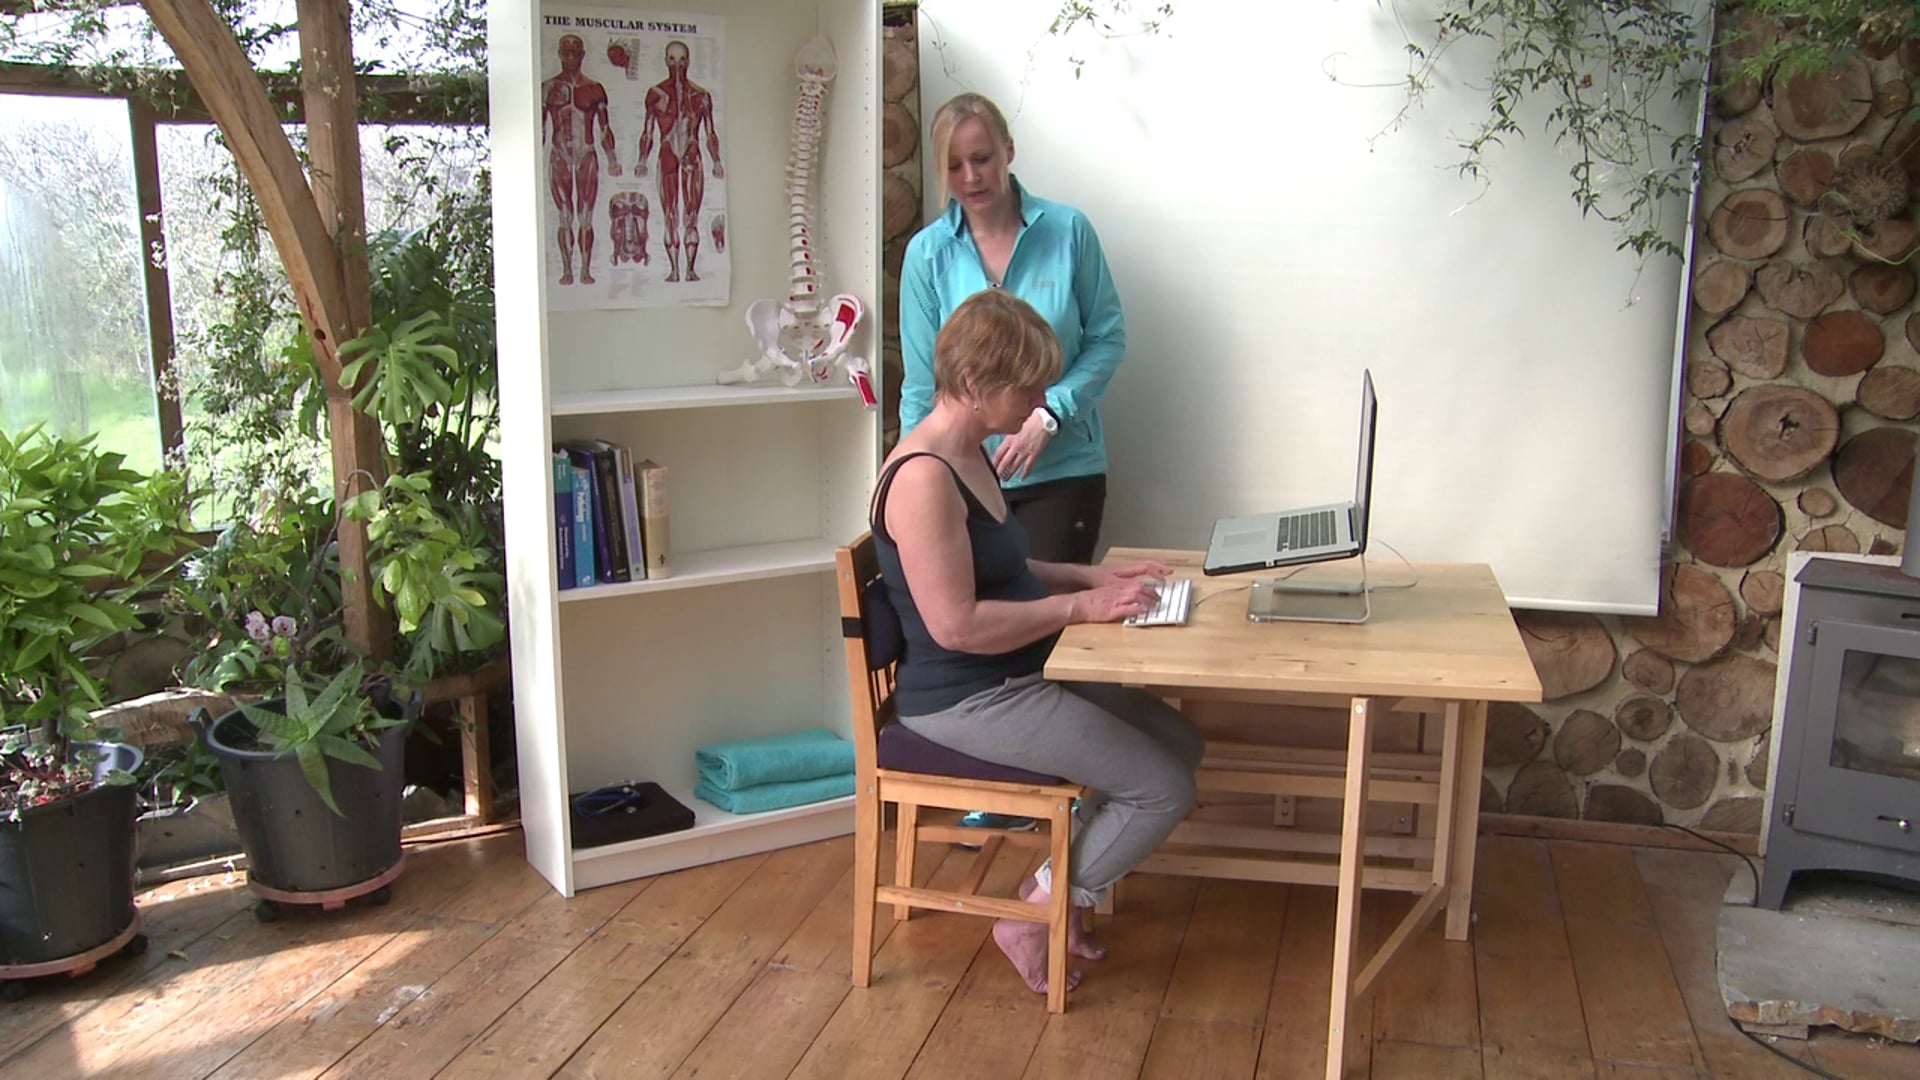 Posture and set up for your workspace